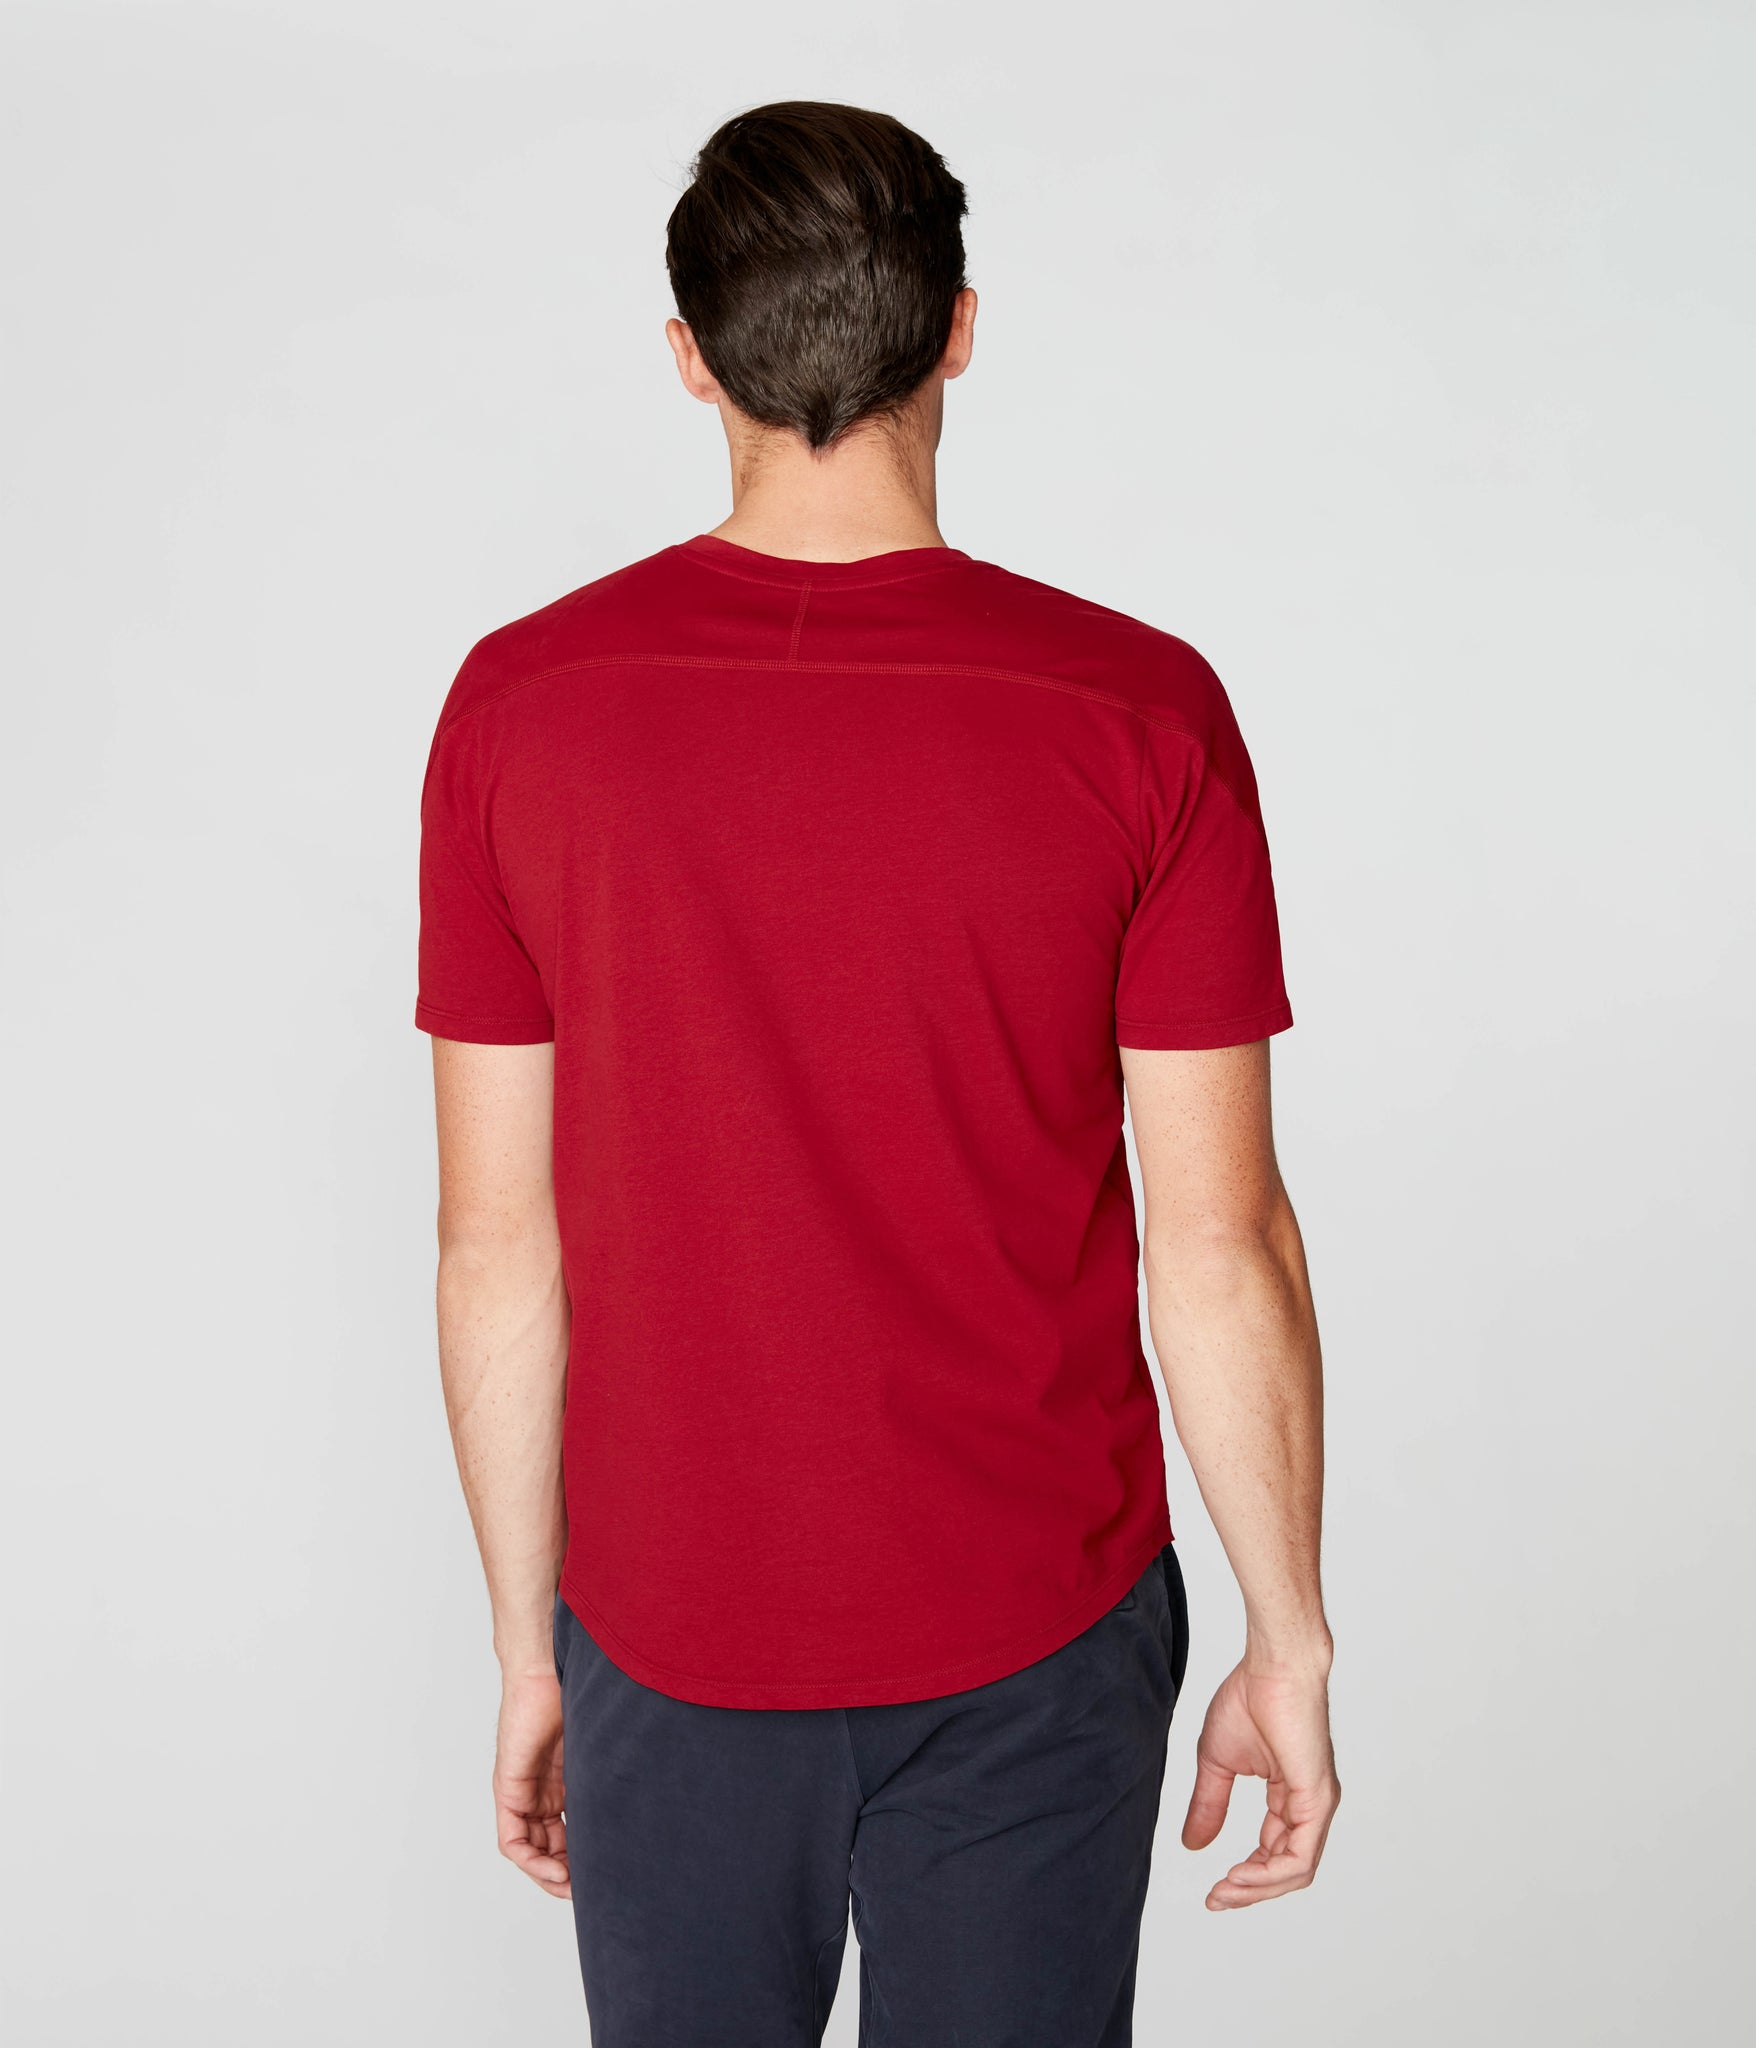 Victory V-Notch in Premium Cotton Jersey  - Red